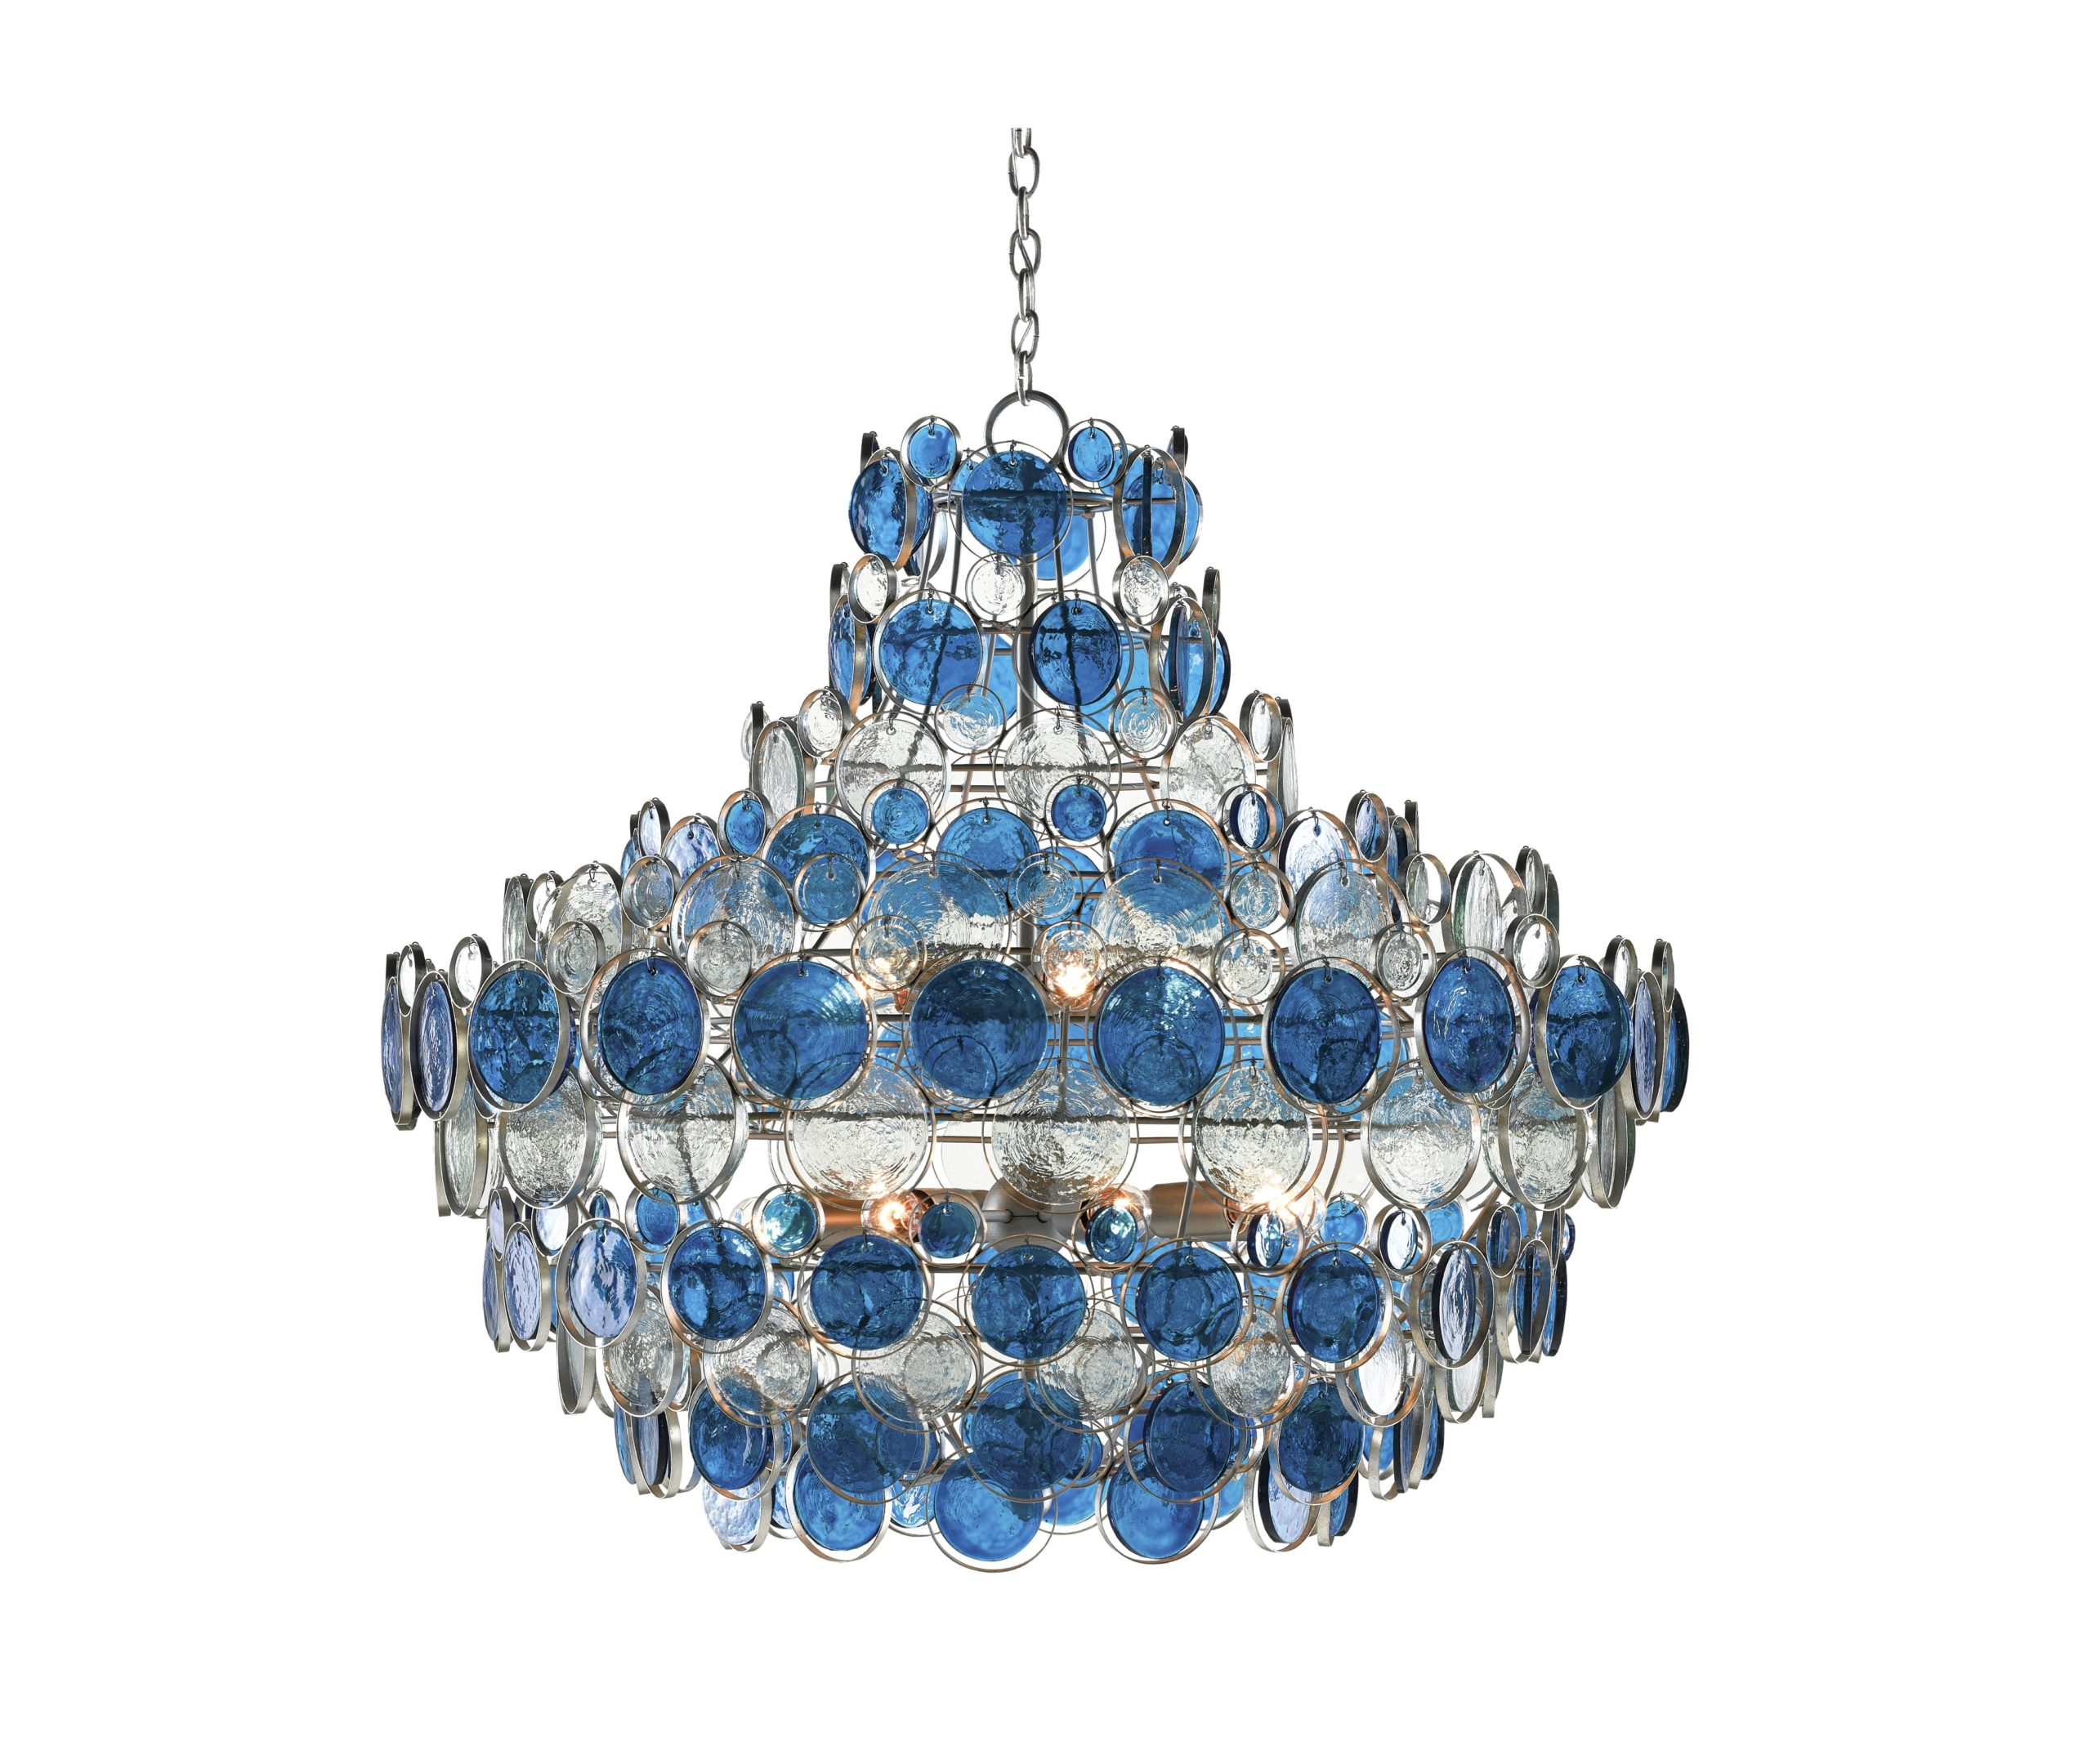 NYDC_WNWN_currey_and_co_products_galahad_blue_chandelier_9000-0723